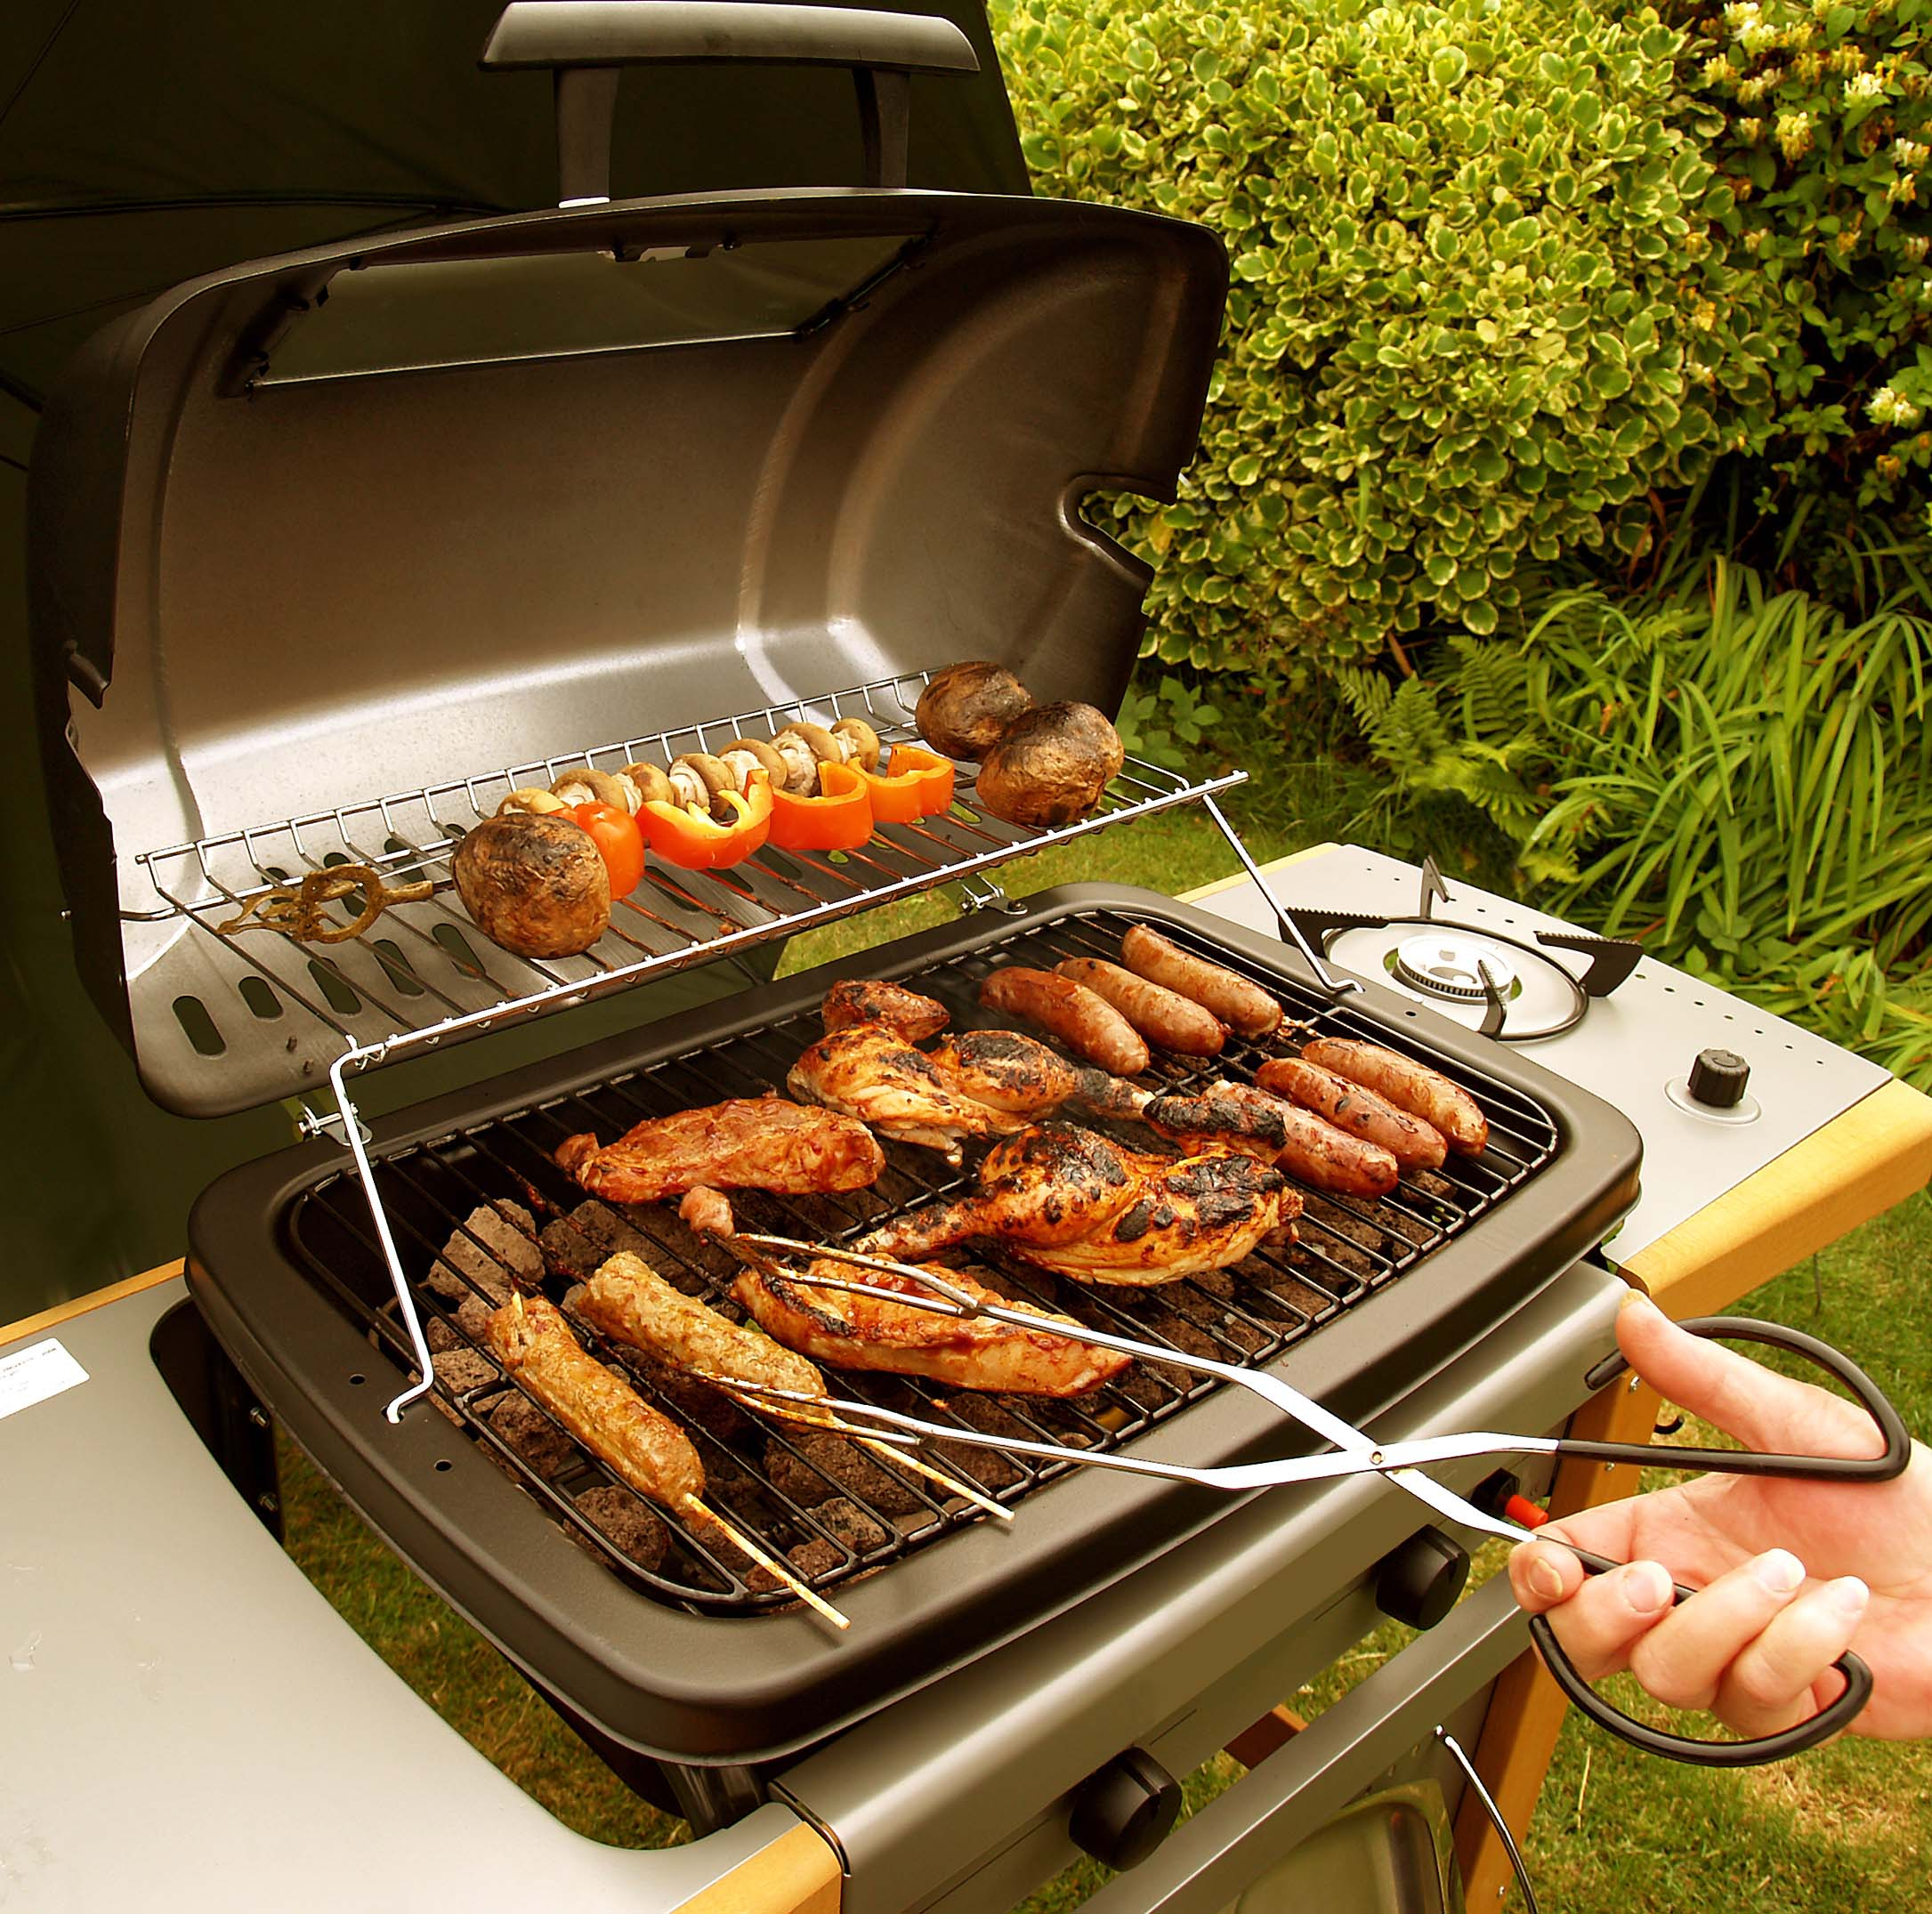 barbecue grill with food